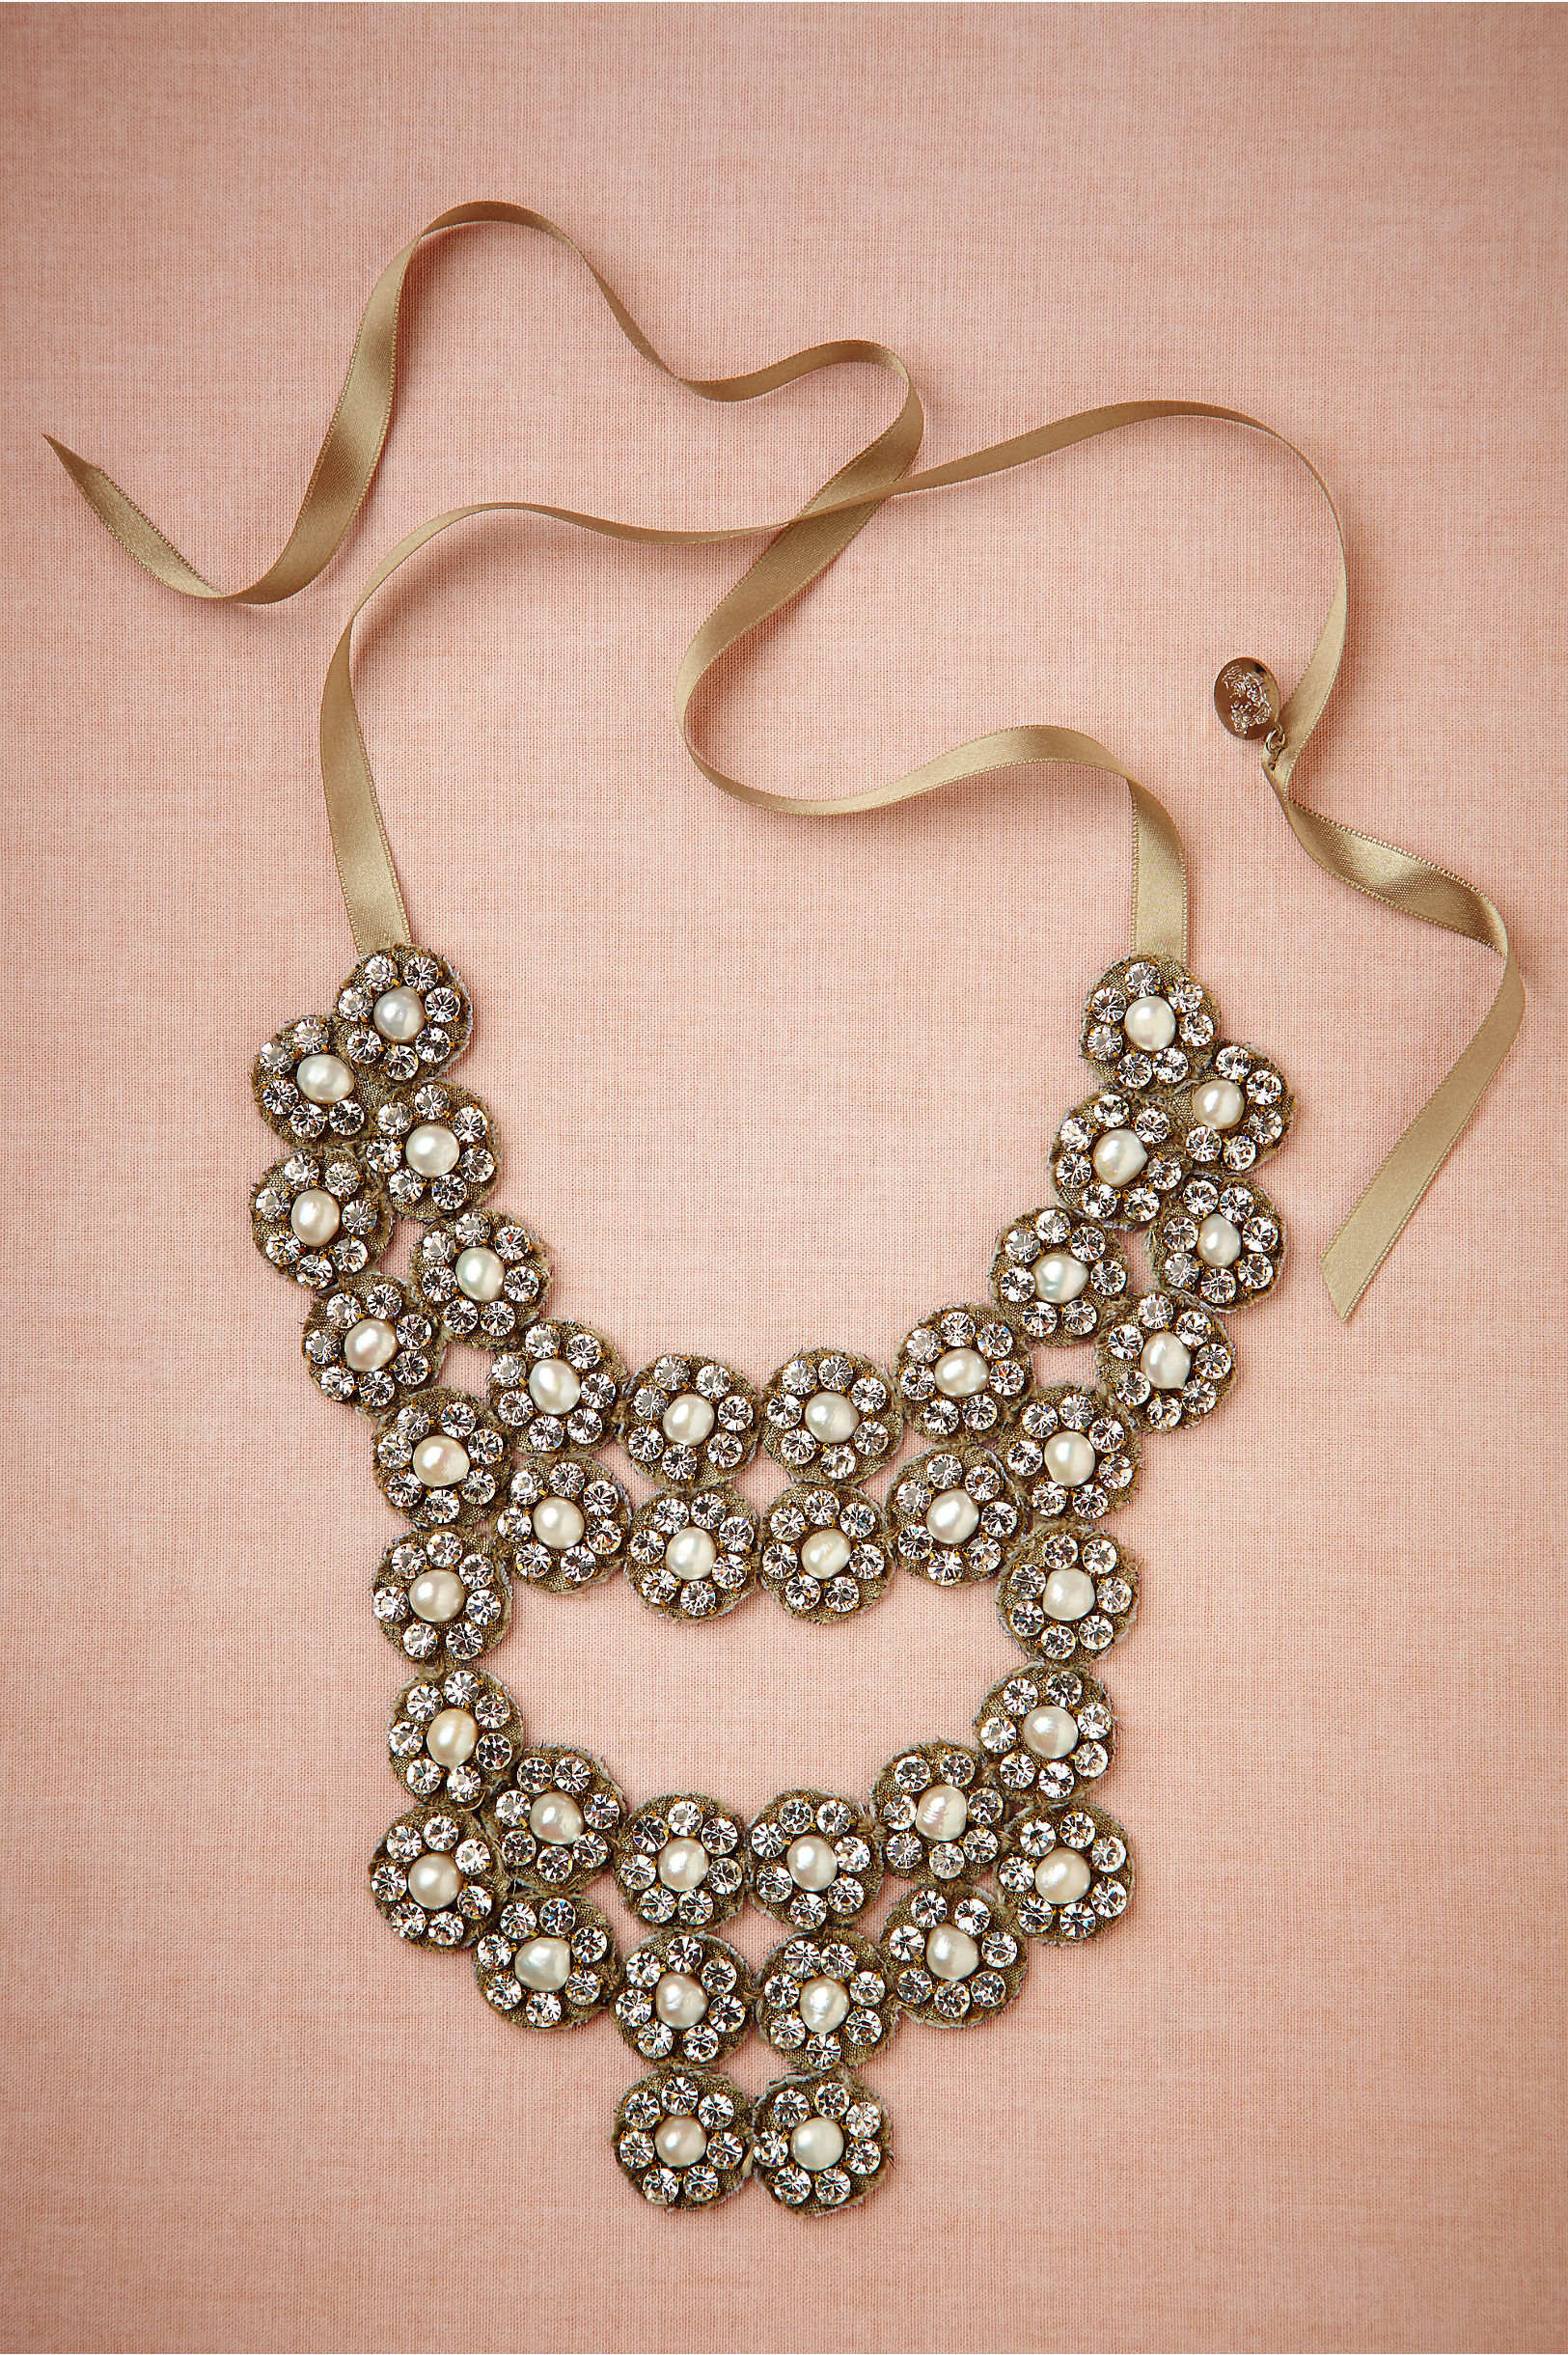 Glinted Flora Necklace in Sale   BHLDN